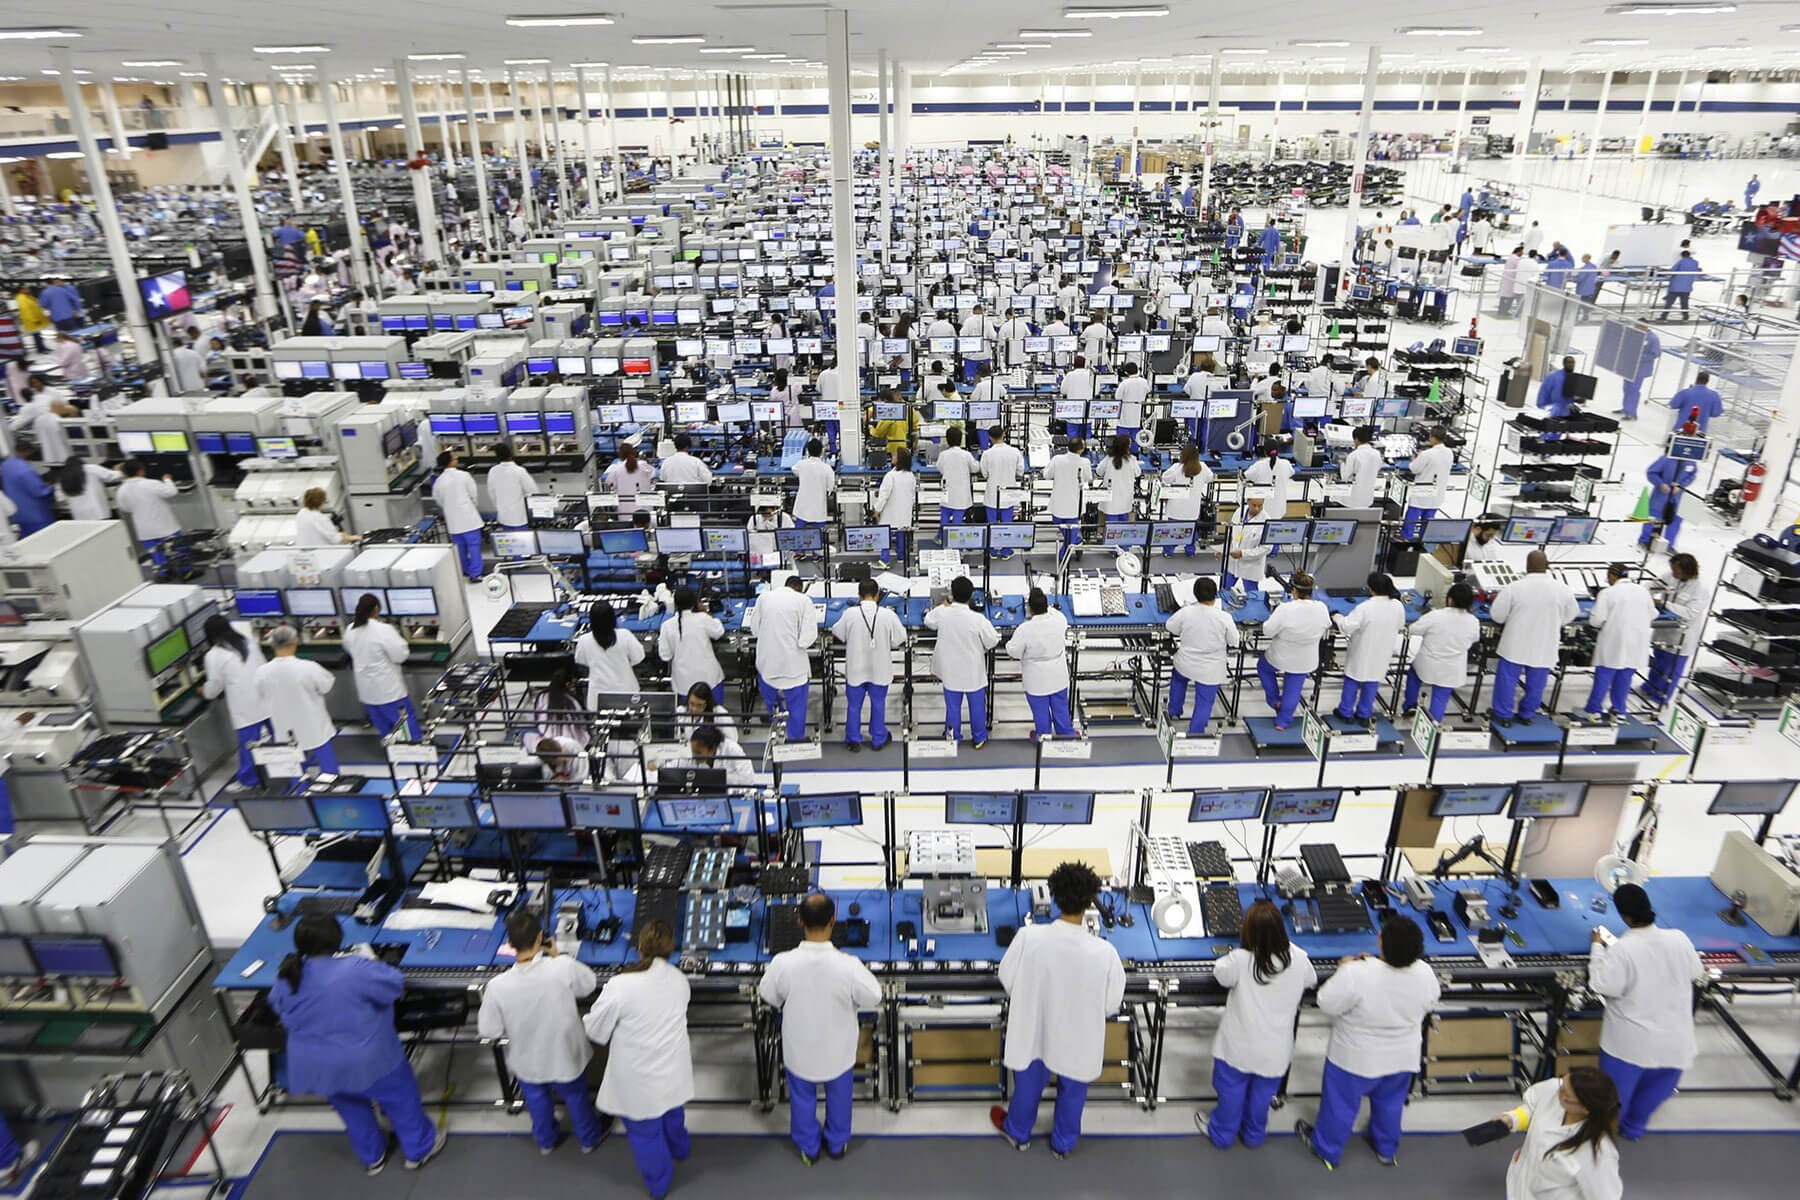 Foxconn's profit dropped in Q4 2019; iPhone 12 mass production will go as originally planned